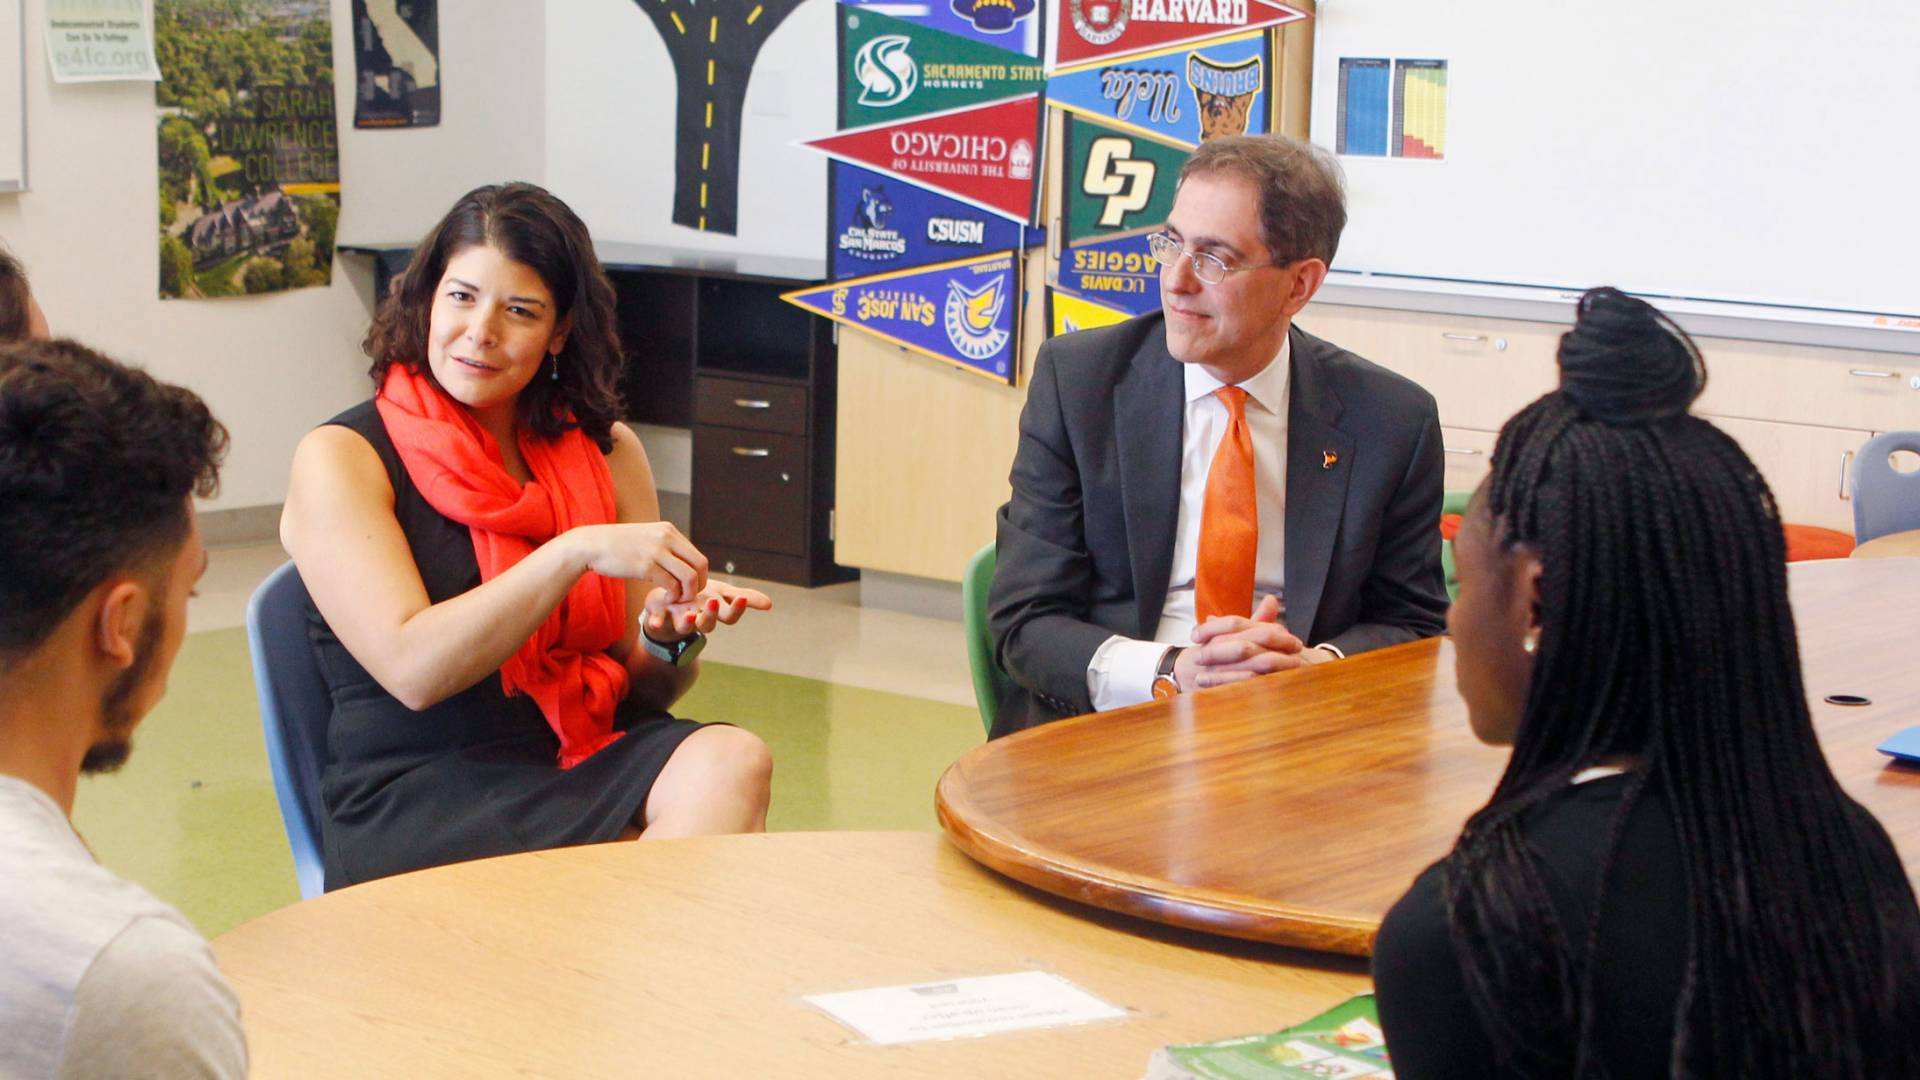 President Eisgruber and Khristina Gonzalez sit at a table, speaking with high school students